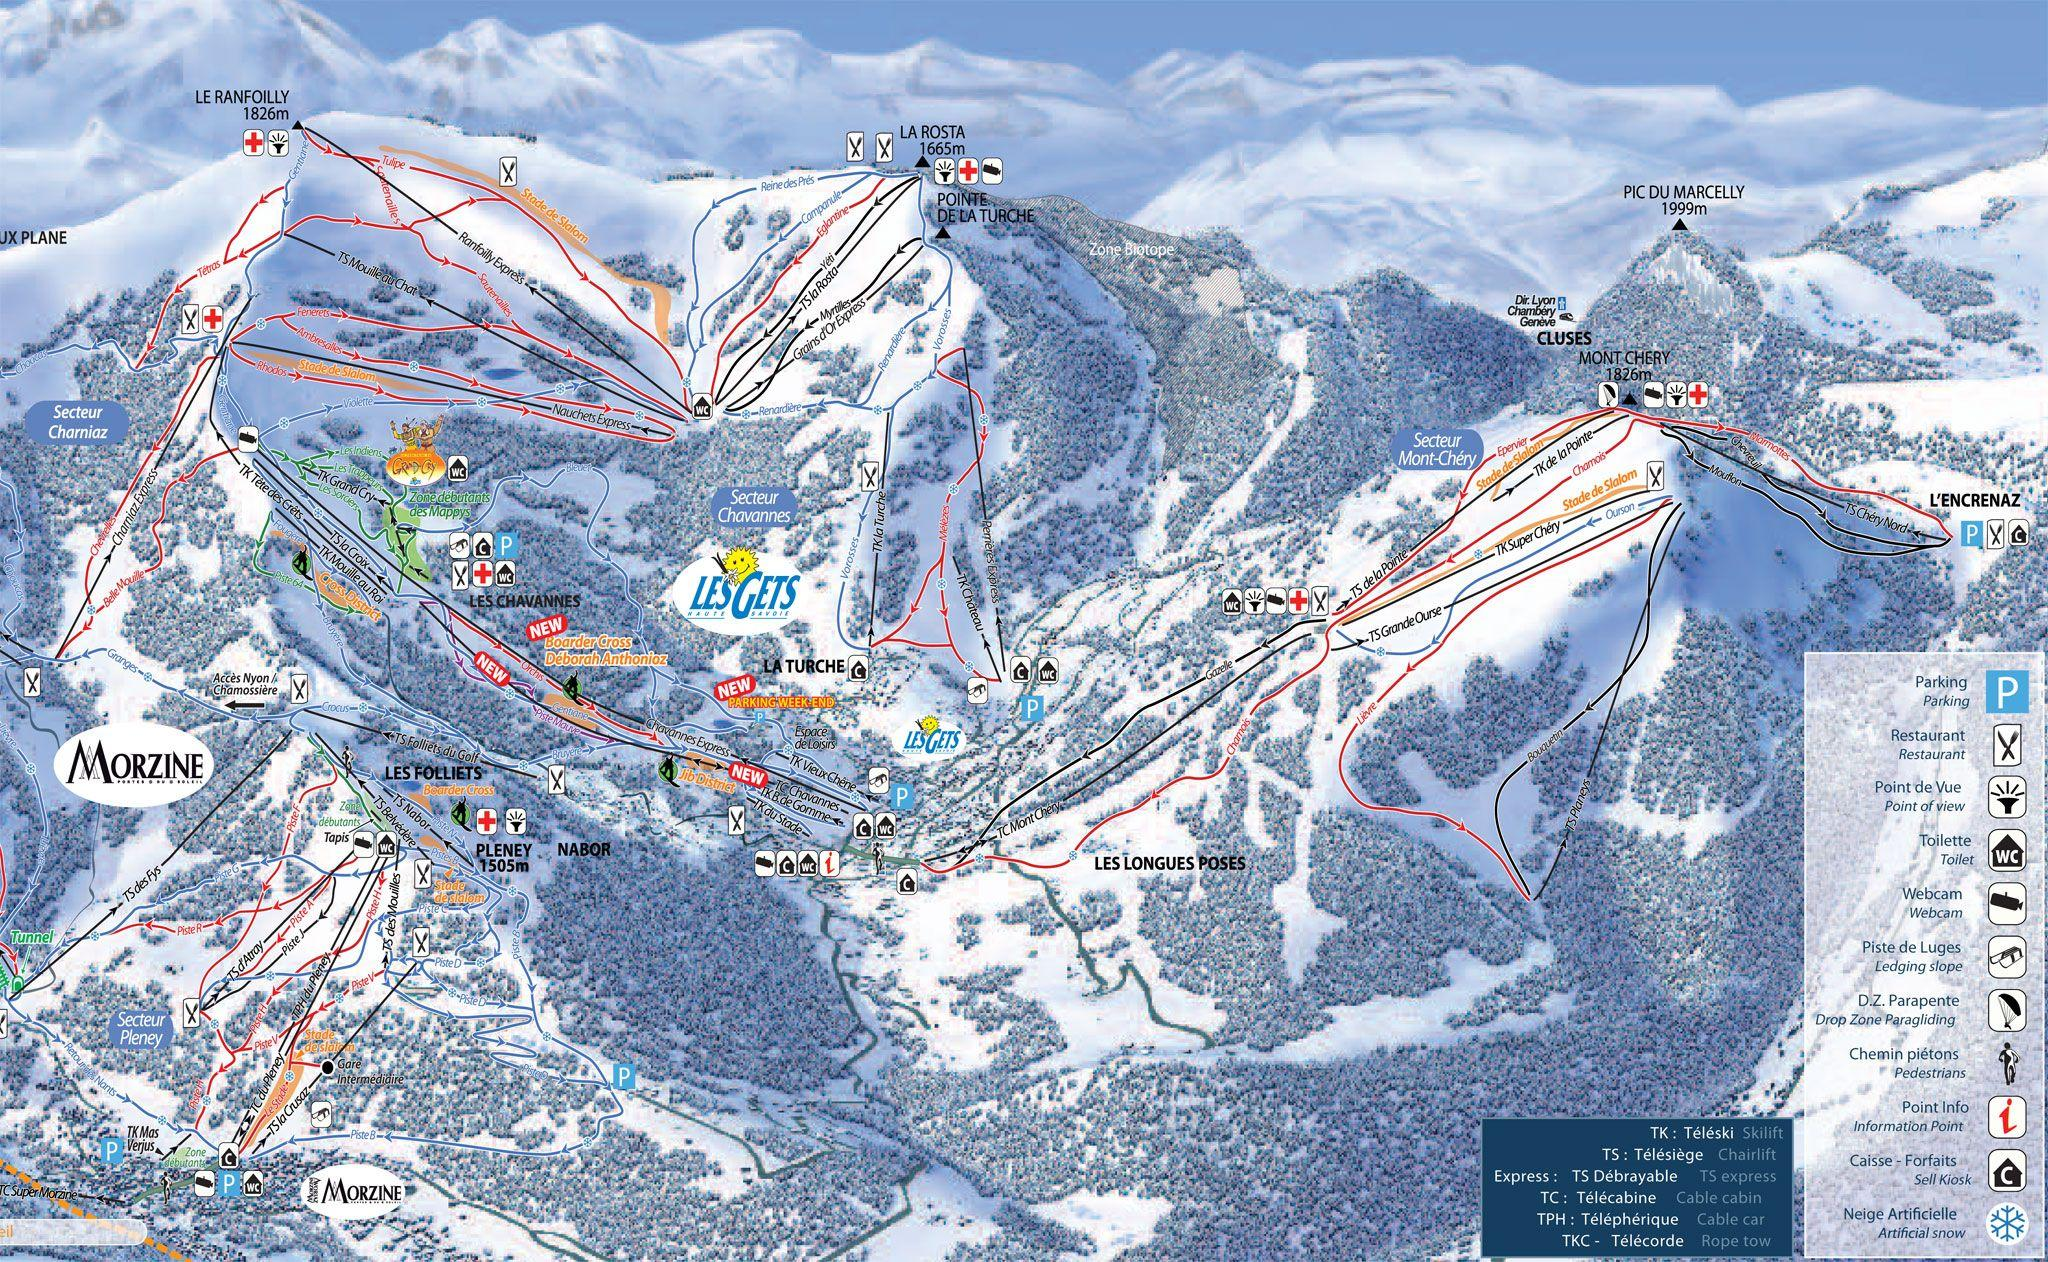 Les Gets Piste Map J2Ski